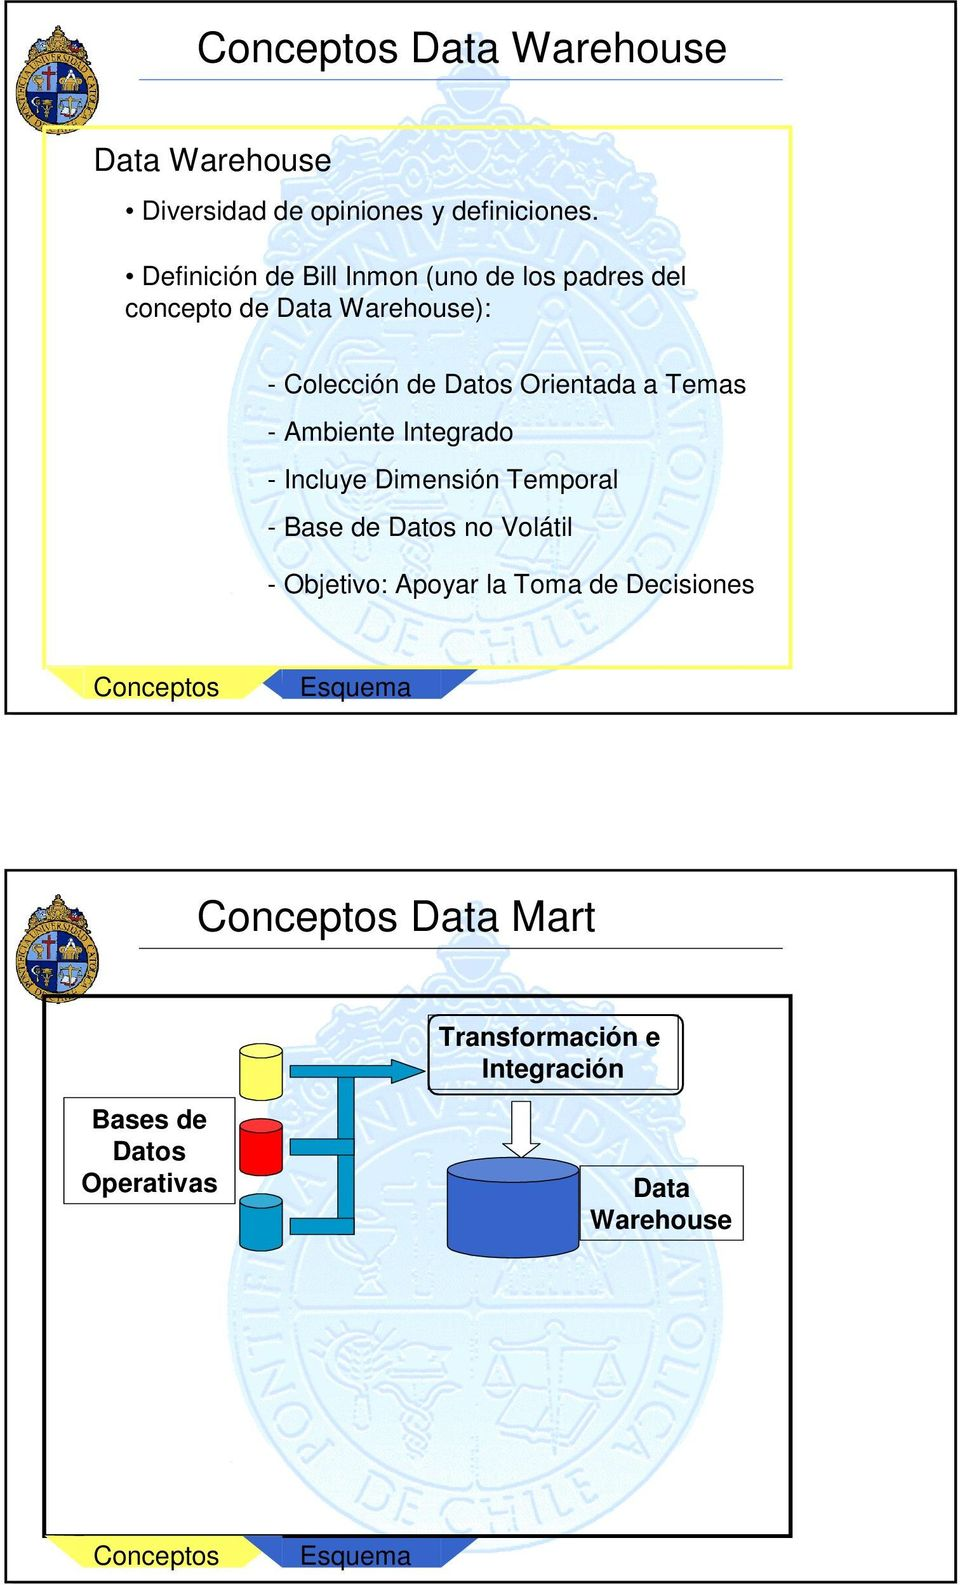 Datos Orientada a Temas - Ambiente Integrado - Incluye Dimensión Temporal - Base de Datos